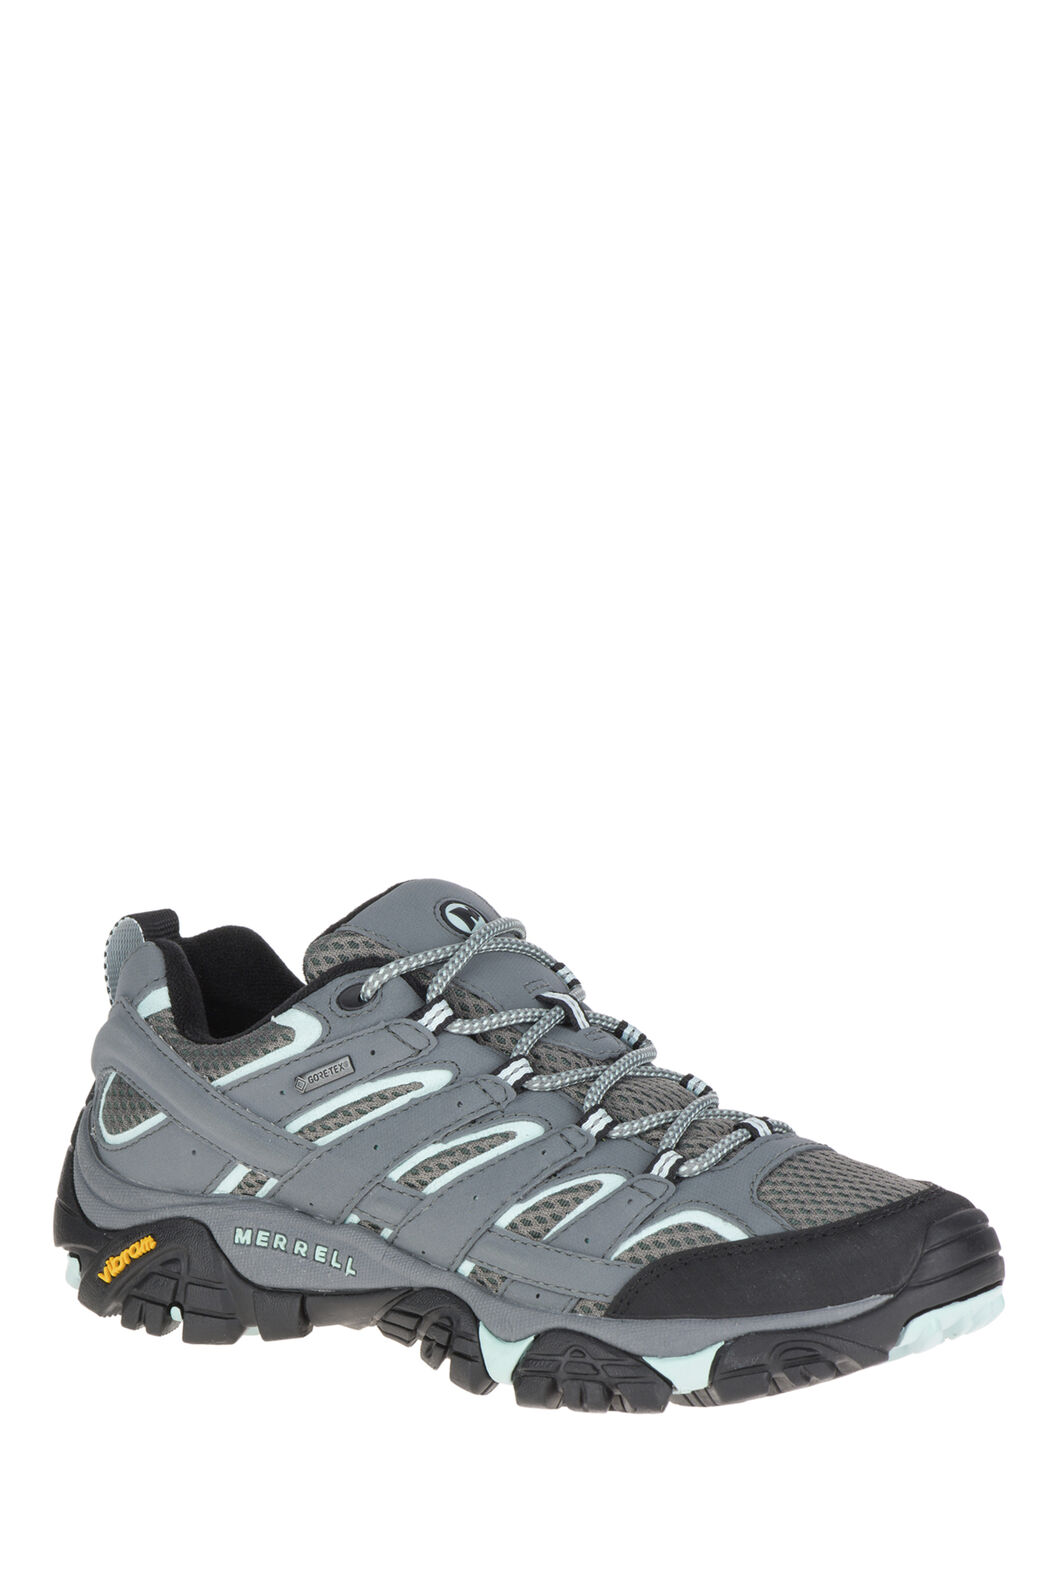 Merrell Moab 2 GTX Hiking Shoes — Women's, Sedona Sage, hi-res